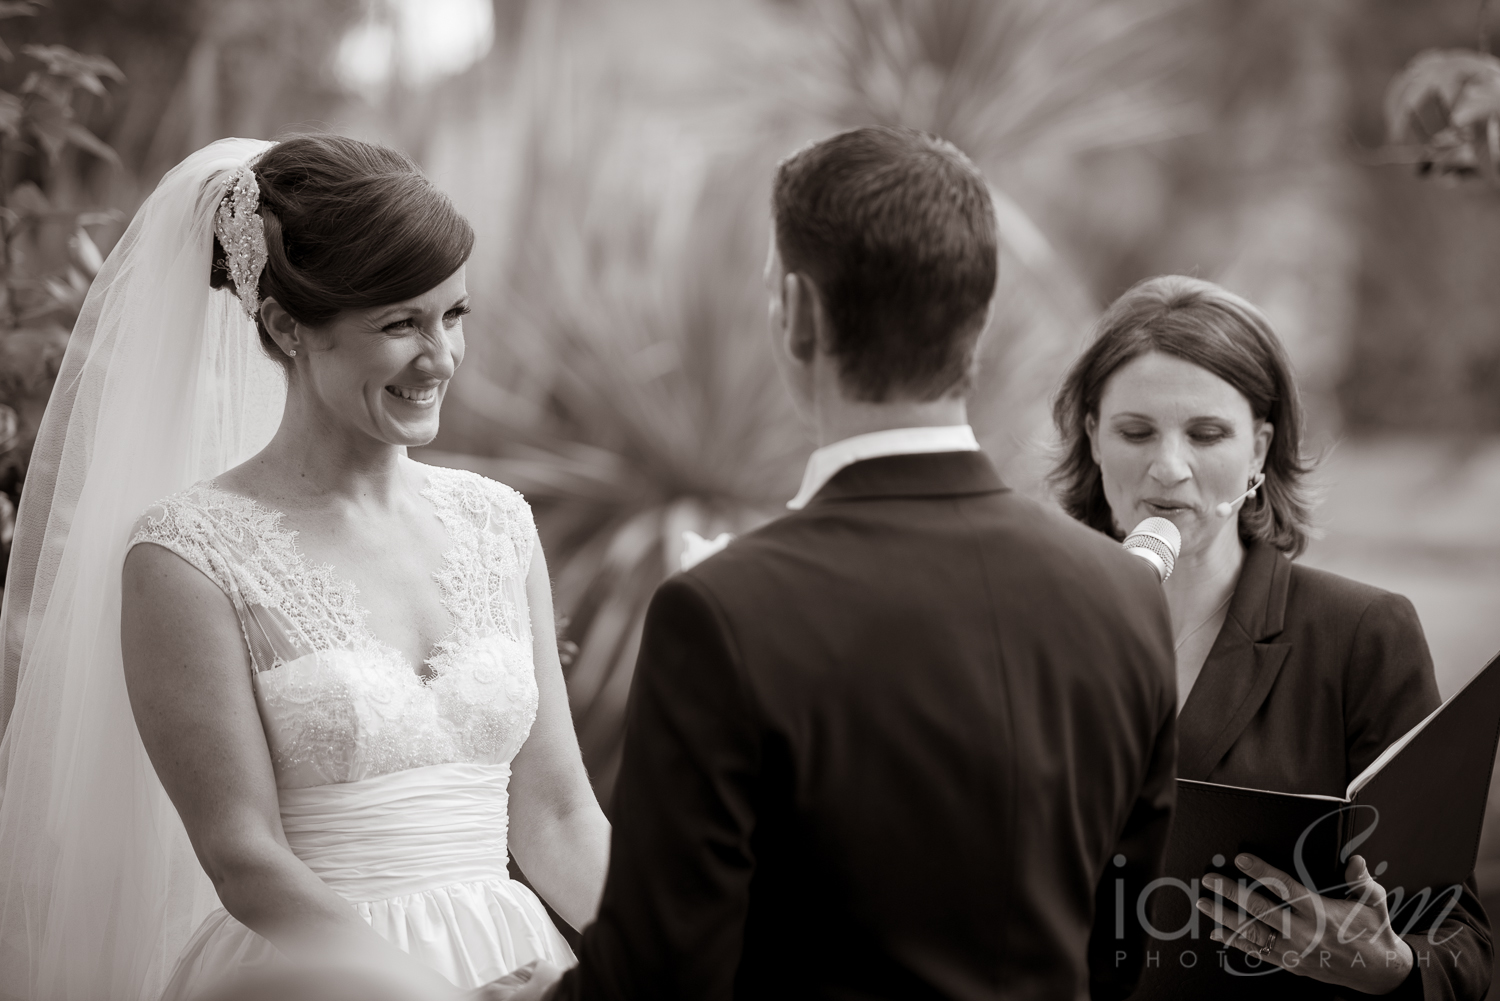 wpid-Katherine-and-Marks-RipponLea-Wedding-by-Iain-Sim-Photography_018.jpg